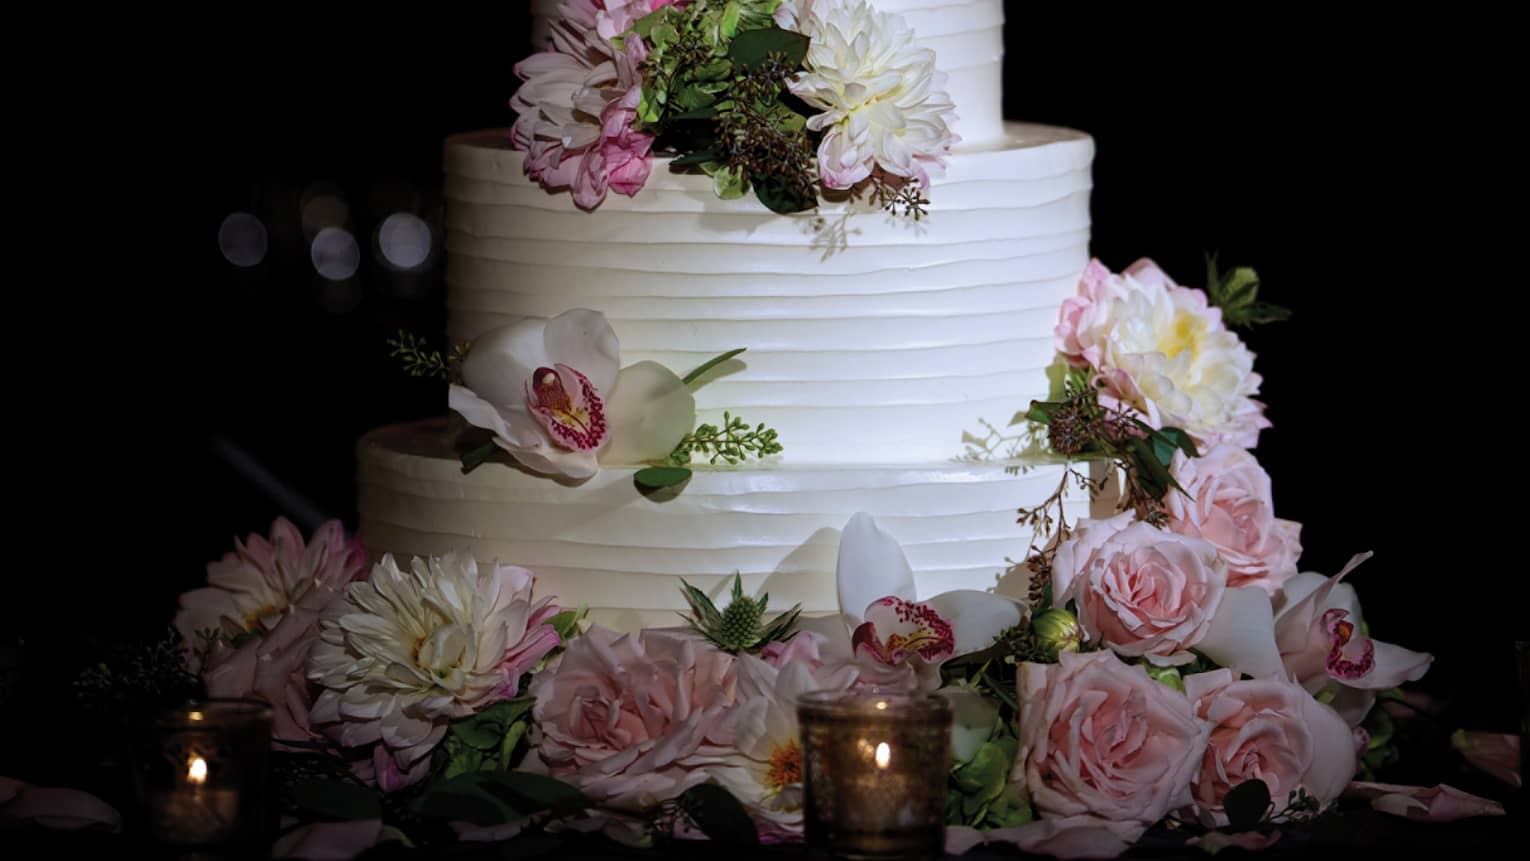 Close-up of white tiered wedding cake garnished with fresh pink flowers